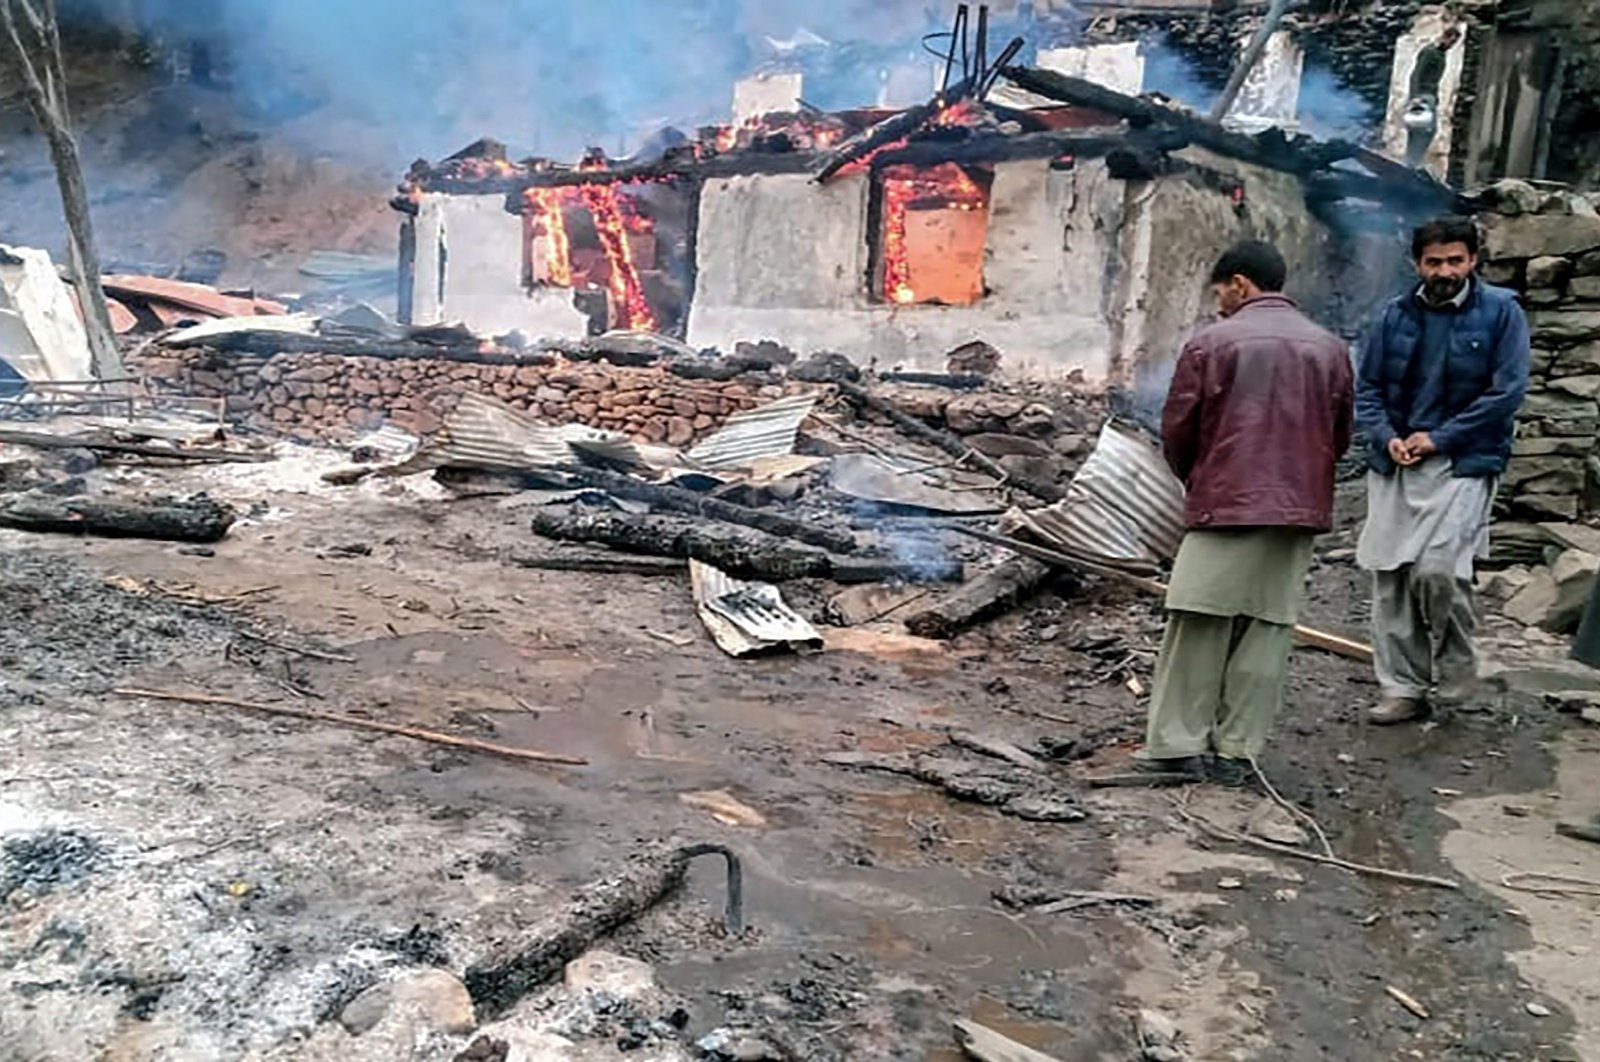 Local residents stand beside a burning house following cross-border shelling between Pakistani and Indian forces in the village of Tehjain at the Line of Control (LoC), the de facto border between Pakistan and India, in Neelum Valley of Pakistan-administered Kashmir, Nov. 13, 2020. (AFP Photo)